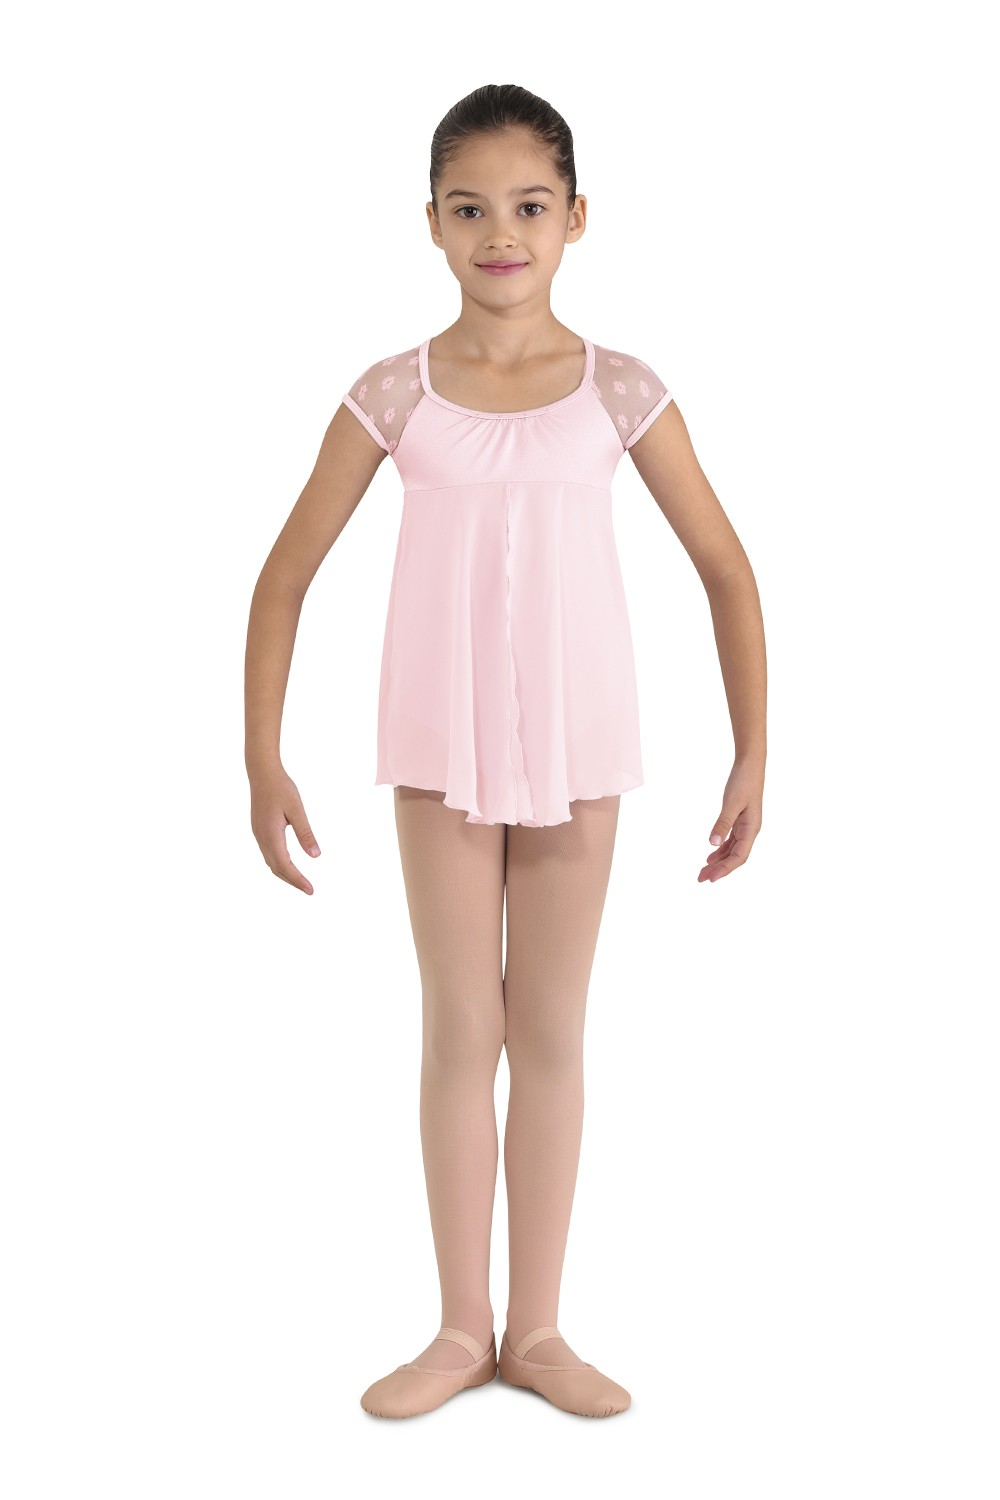 Cap Sleeve Dress Leotard Children's Dance Leotards